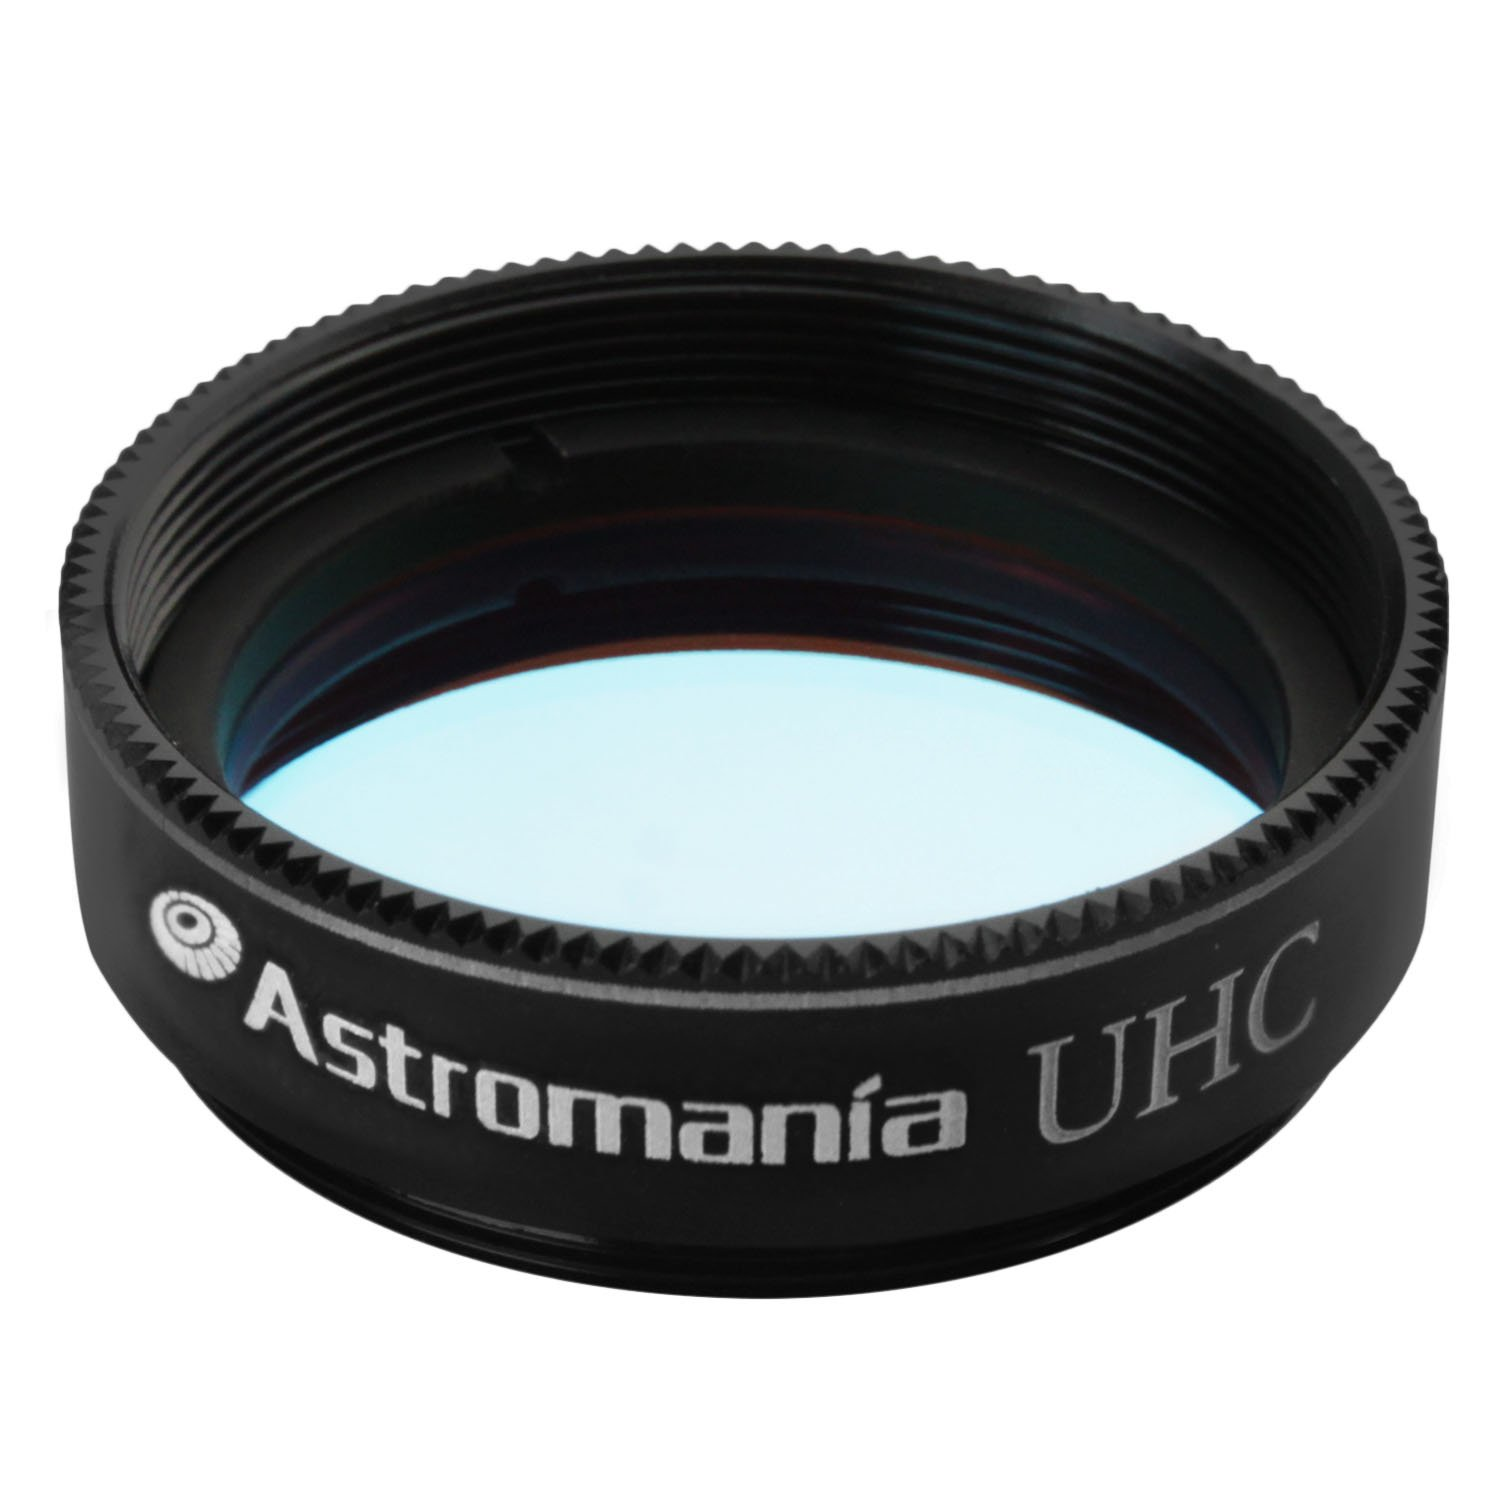 Astromania 1.25'' UHC (Ultra High Contrast) Filter - superb views of the Orion, Lagoon, Swan and other extended nebulae